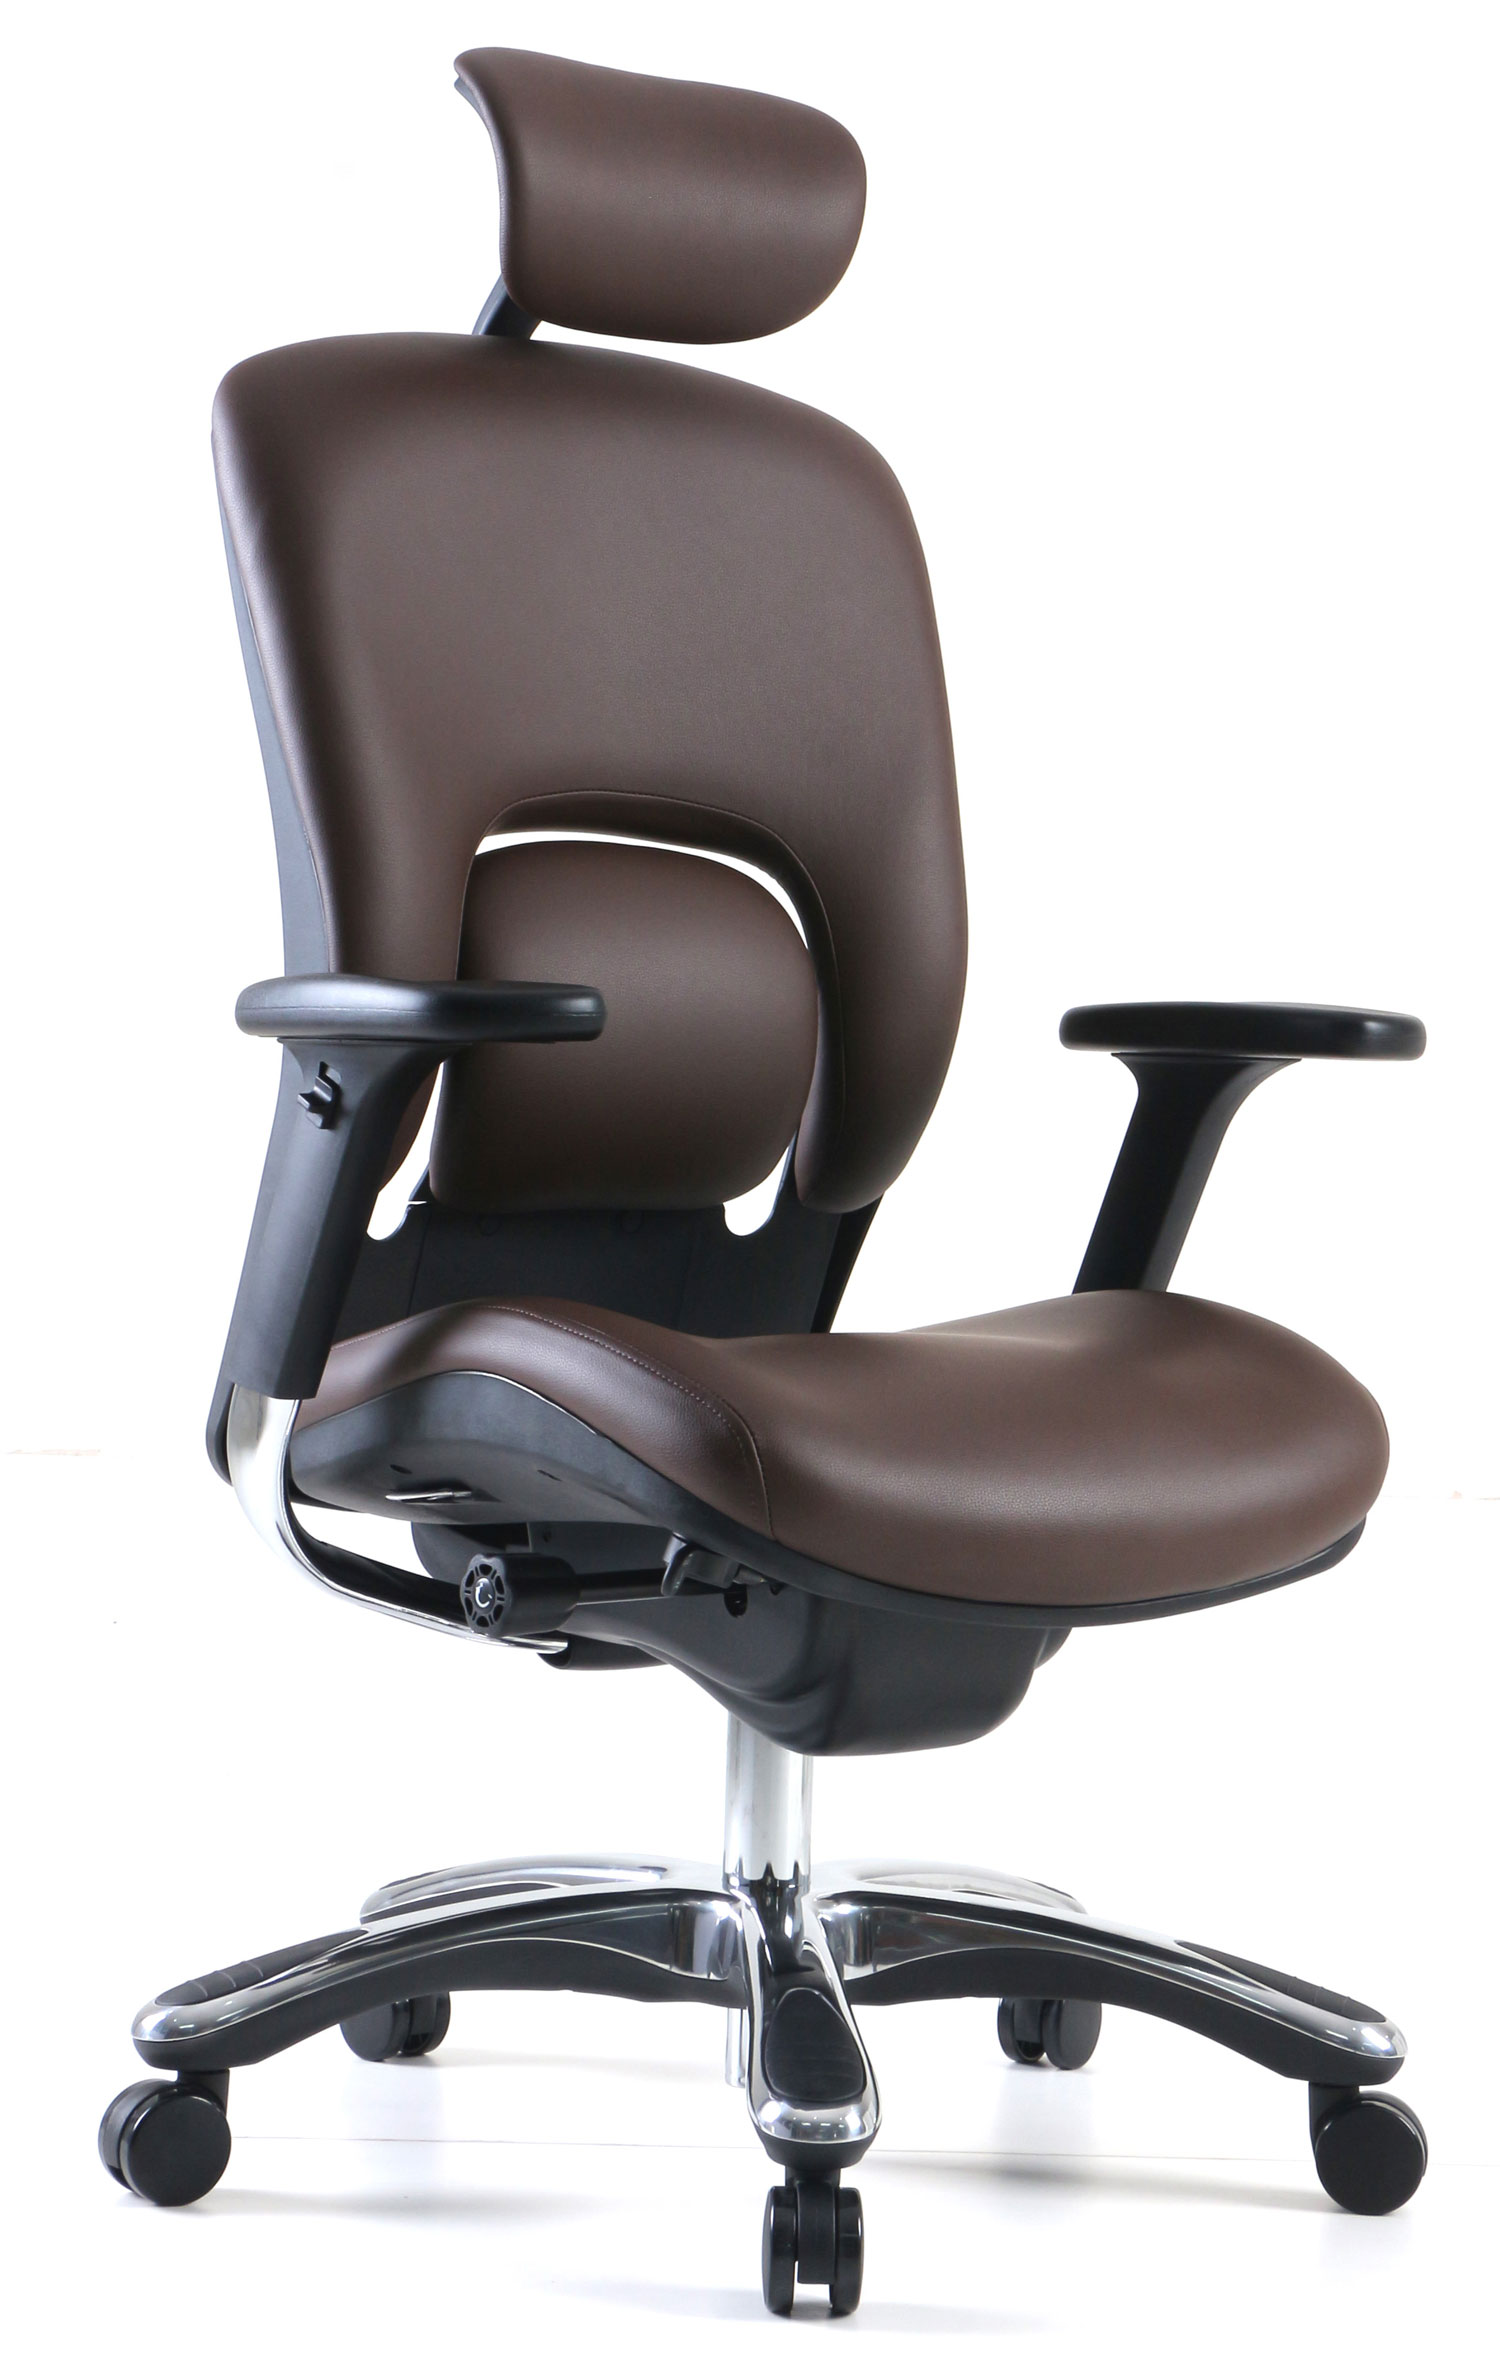 GM Seating Ergolux Genuine Leather Executive Hi Swivel Chair Chrome Base with Headrest, Brown